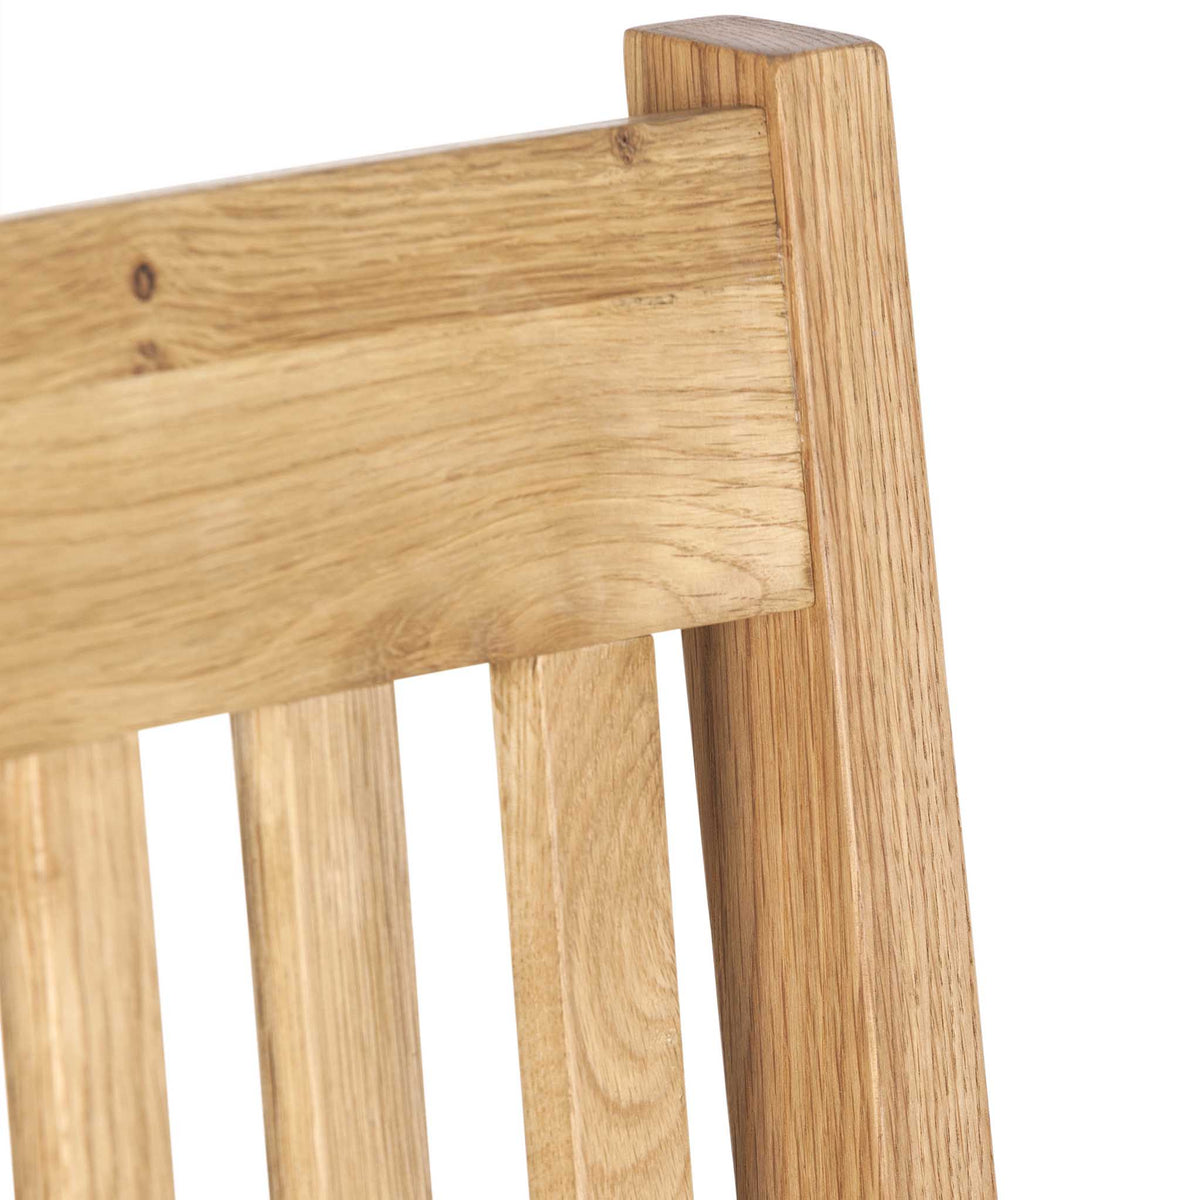 Seat back - Charlestown Oak Dining Chair with Timber Seat